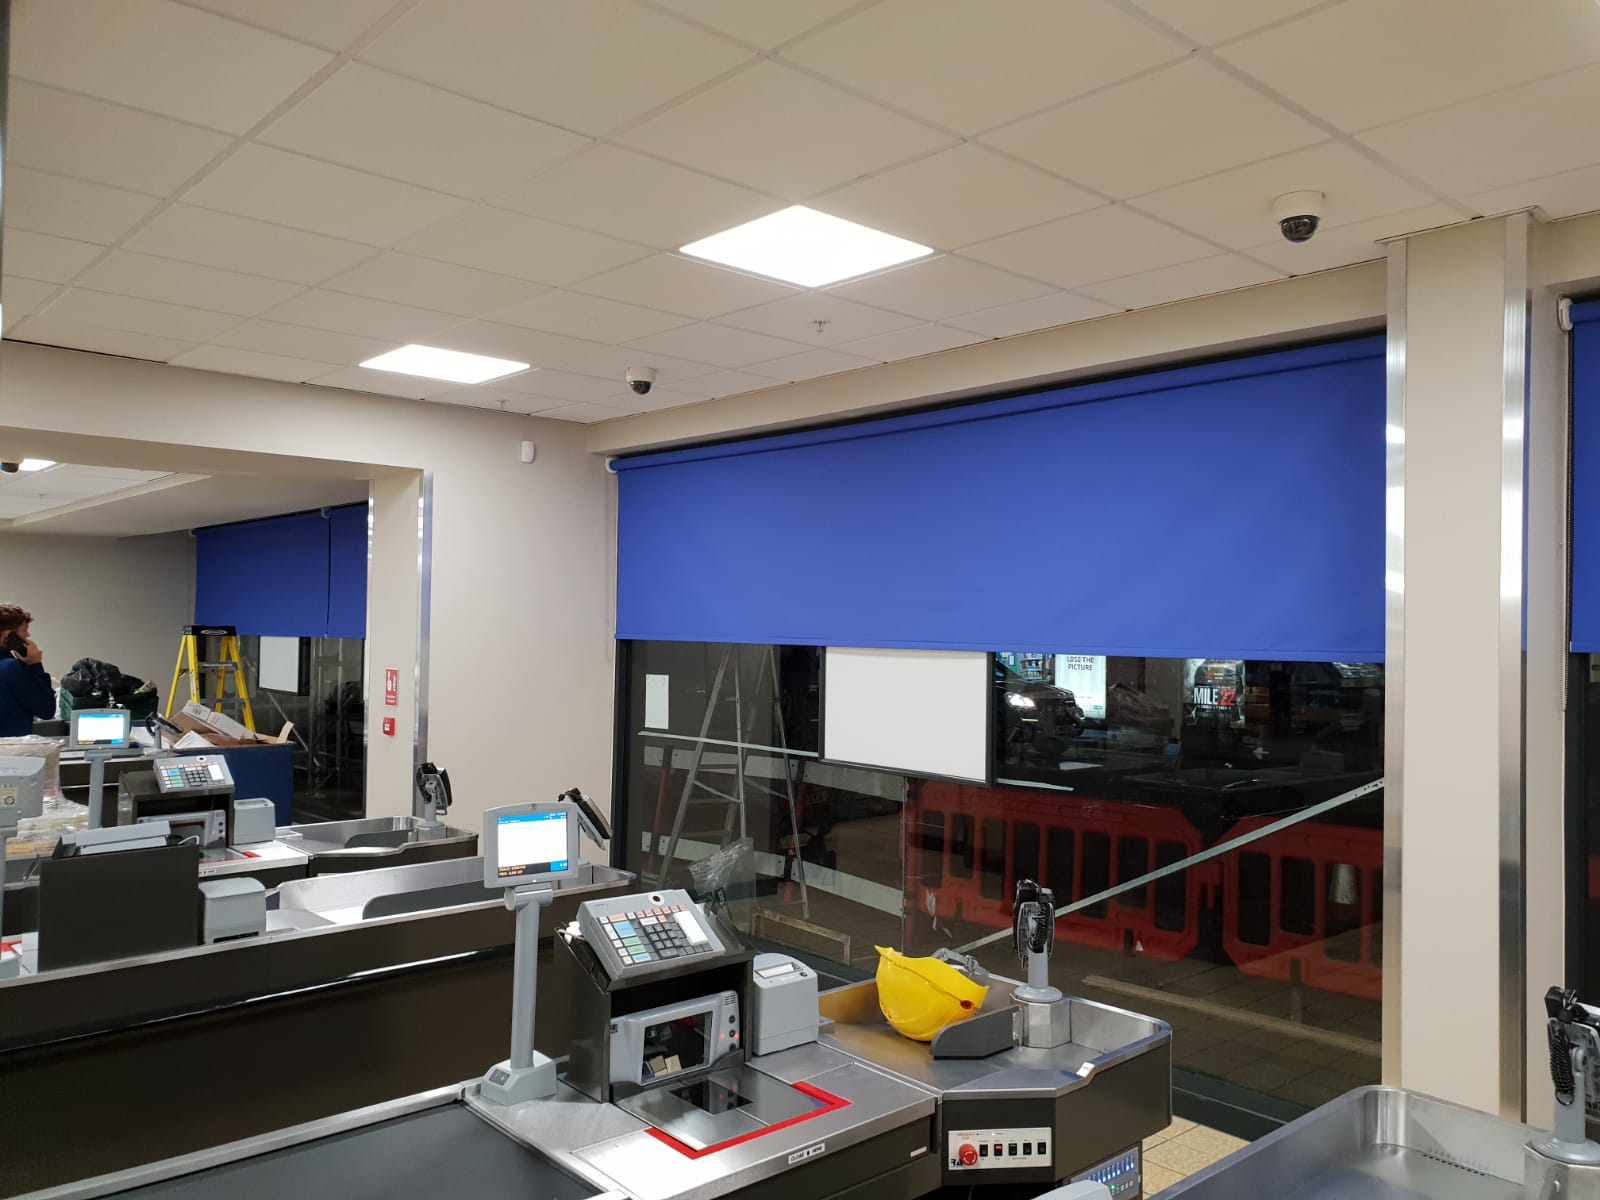 Office Blinds - Large 4.5 metre